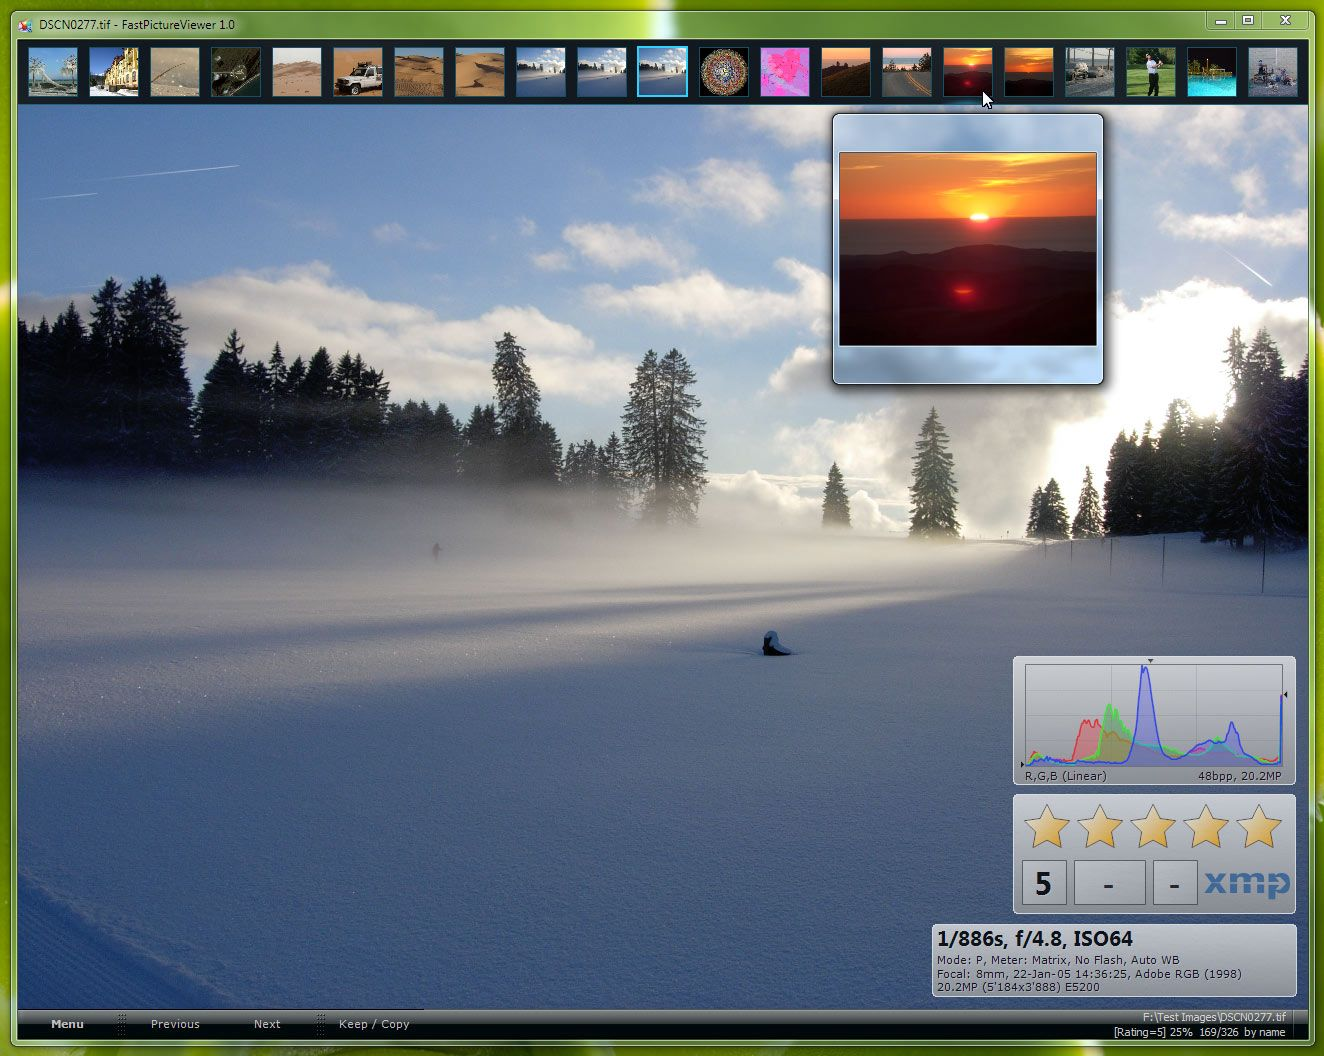 FastPictureViewer Professional Image Viewer running on